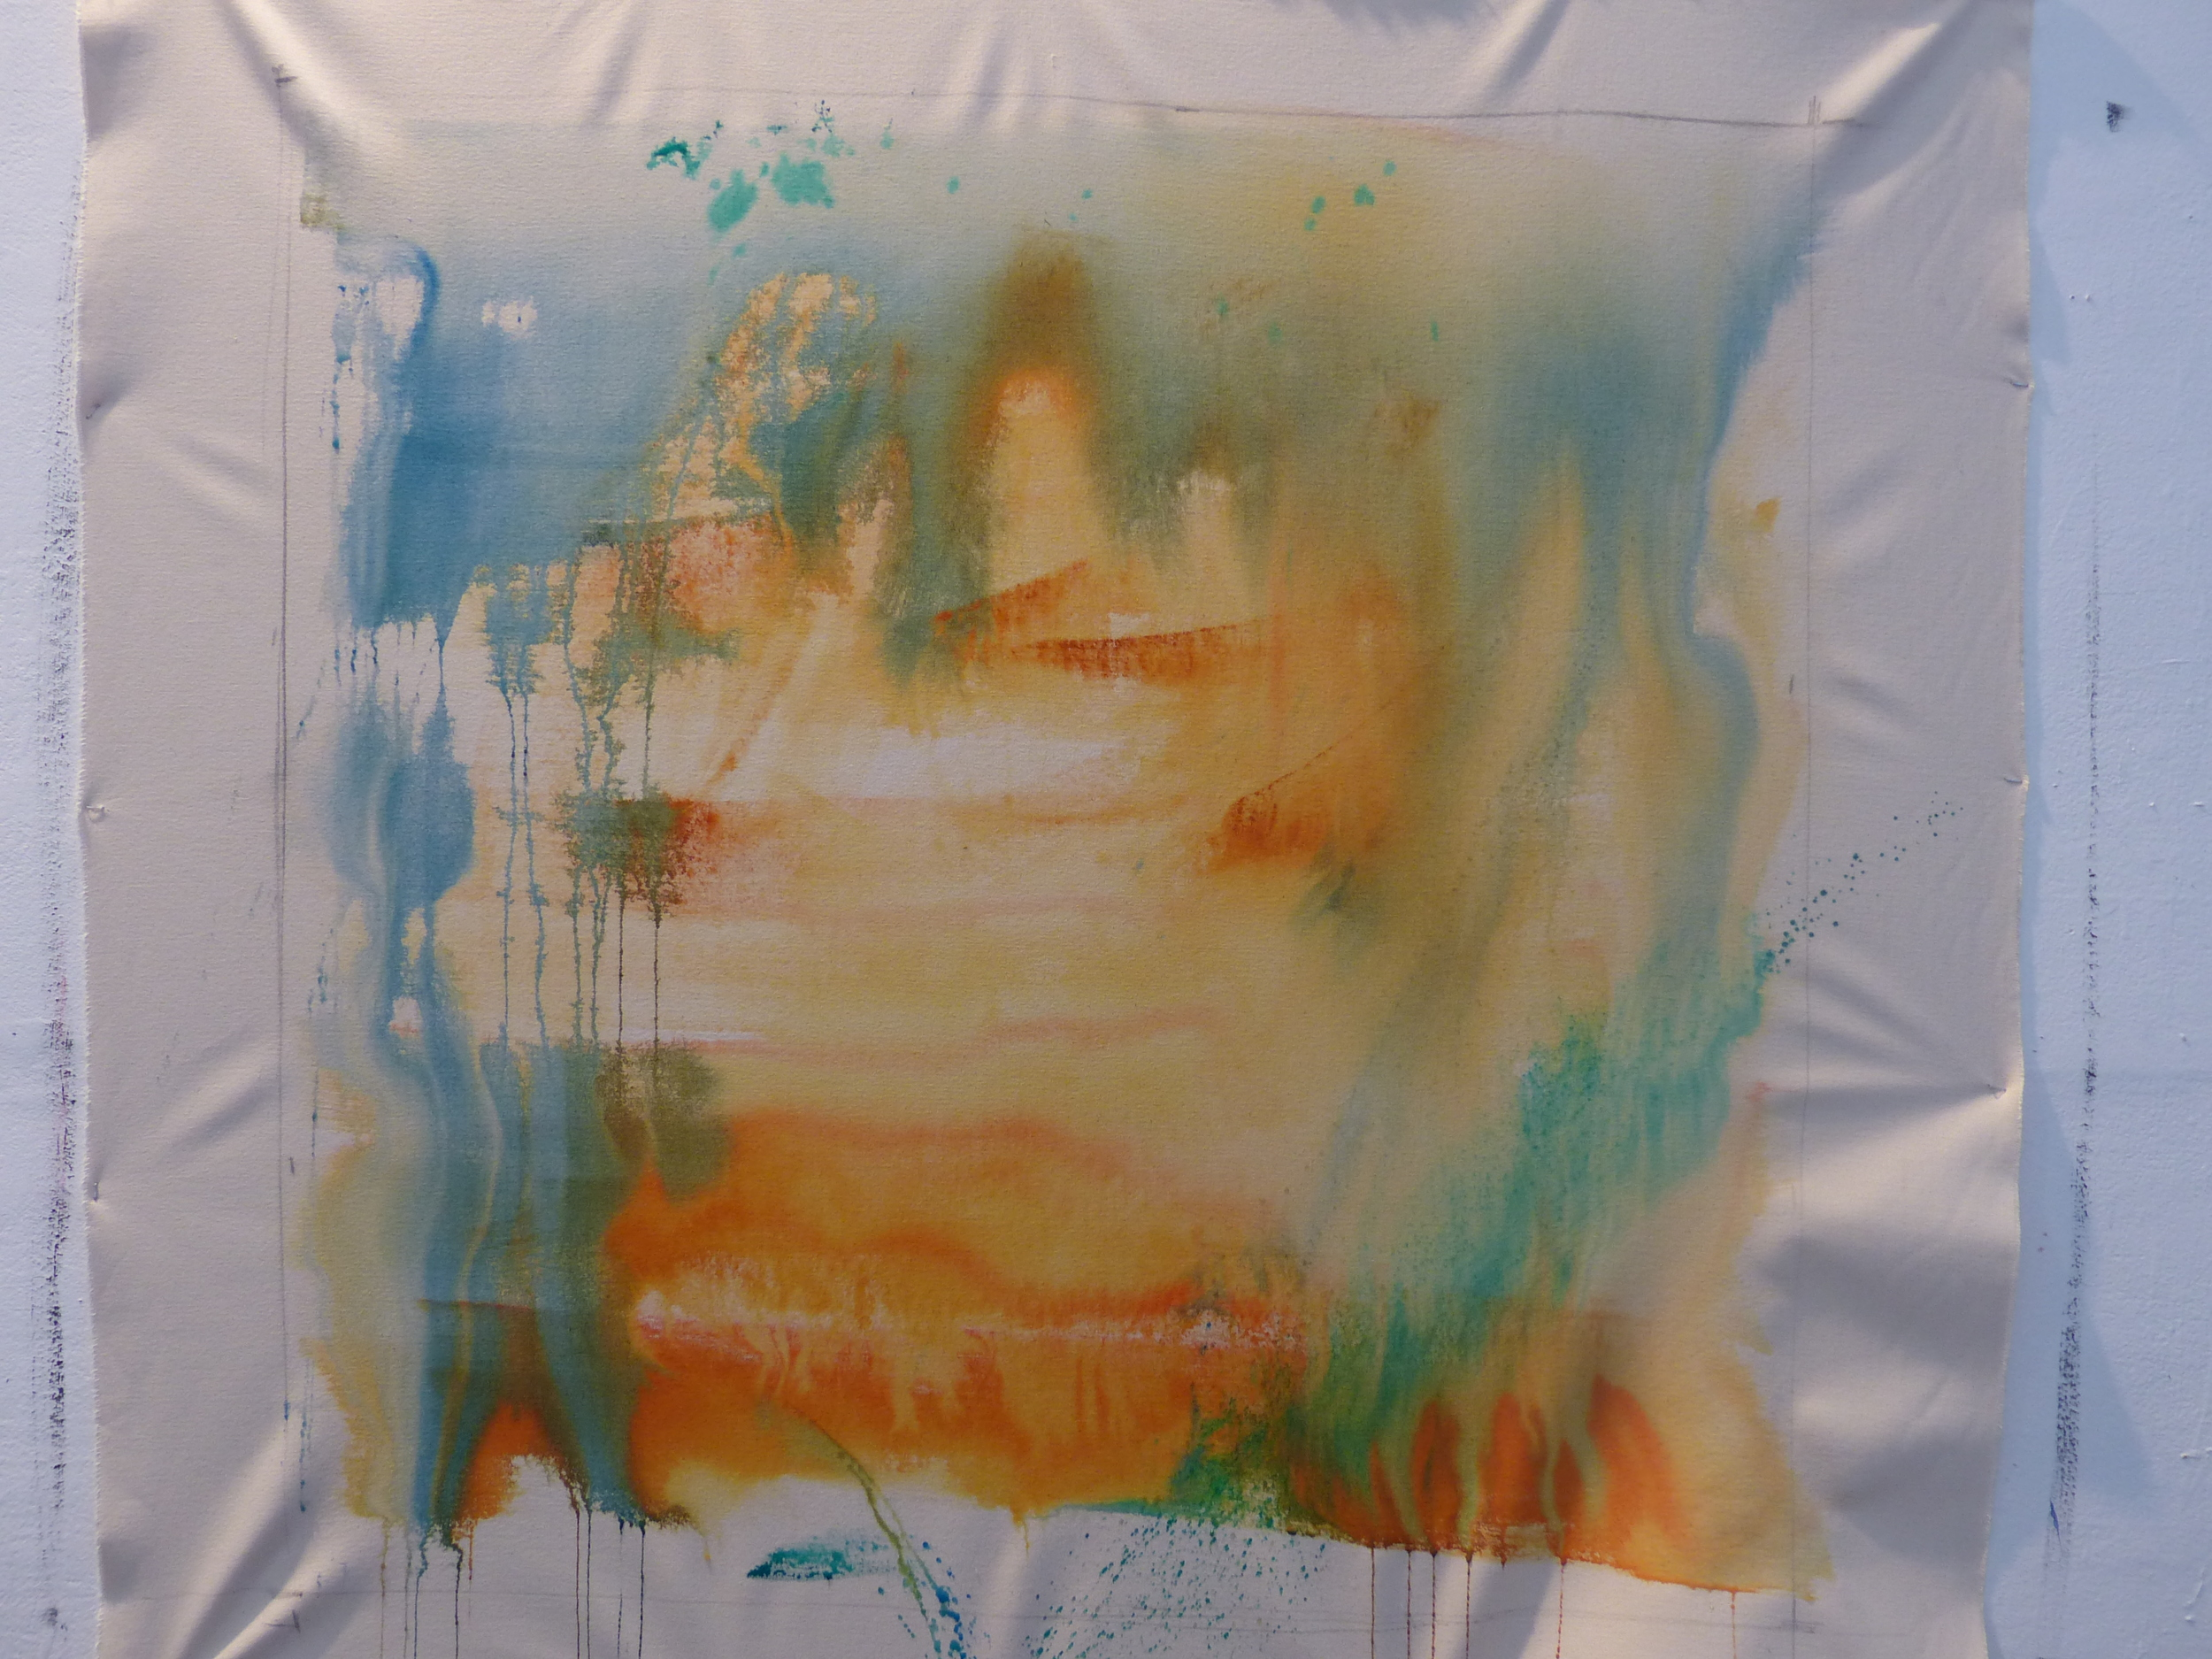 Blending colors of Thalo Green, Thalo Blue, Naples Yellow and Cad Red Light on raw canvas....how far do I take a painting? How highly workedmust the surface beto be of value?